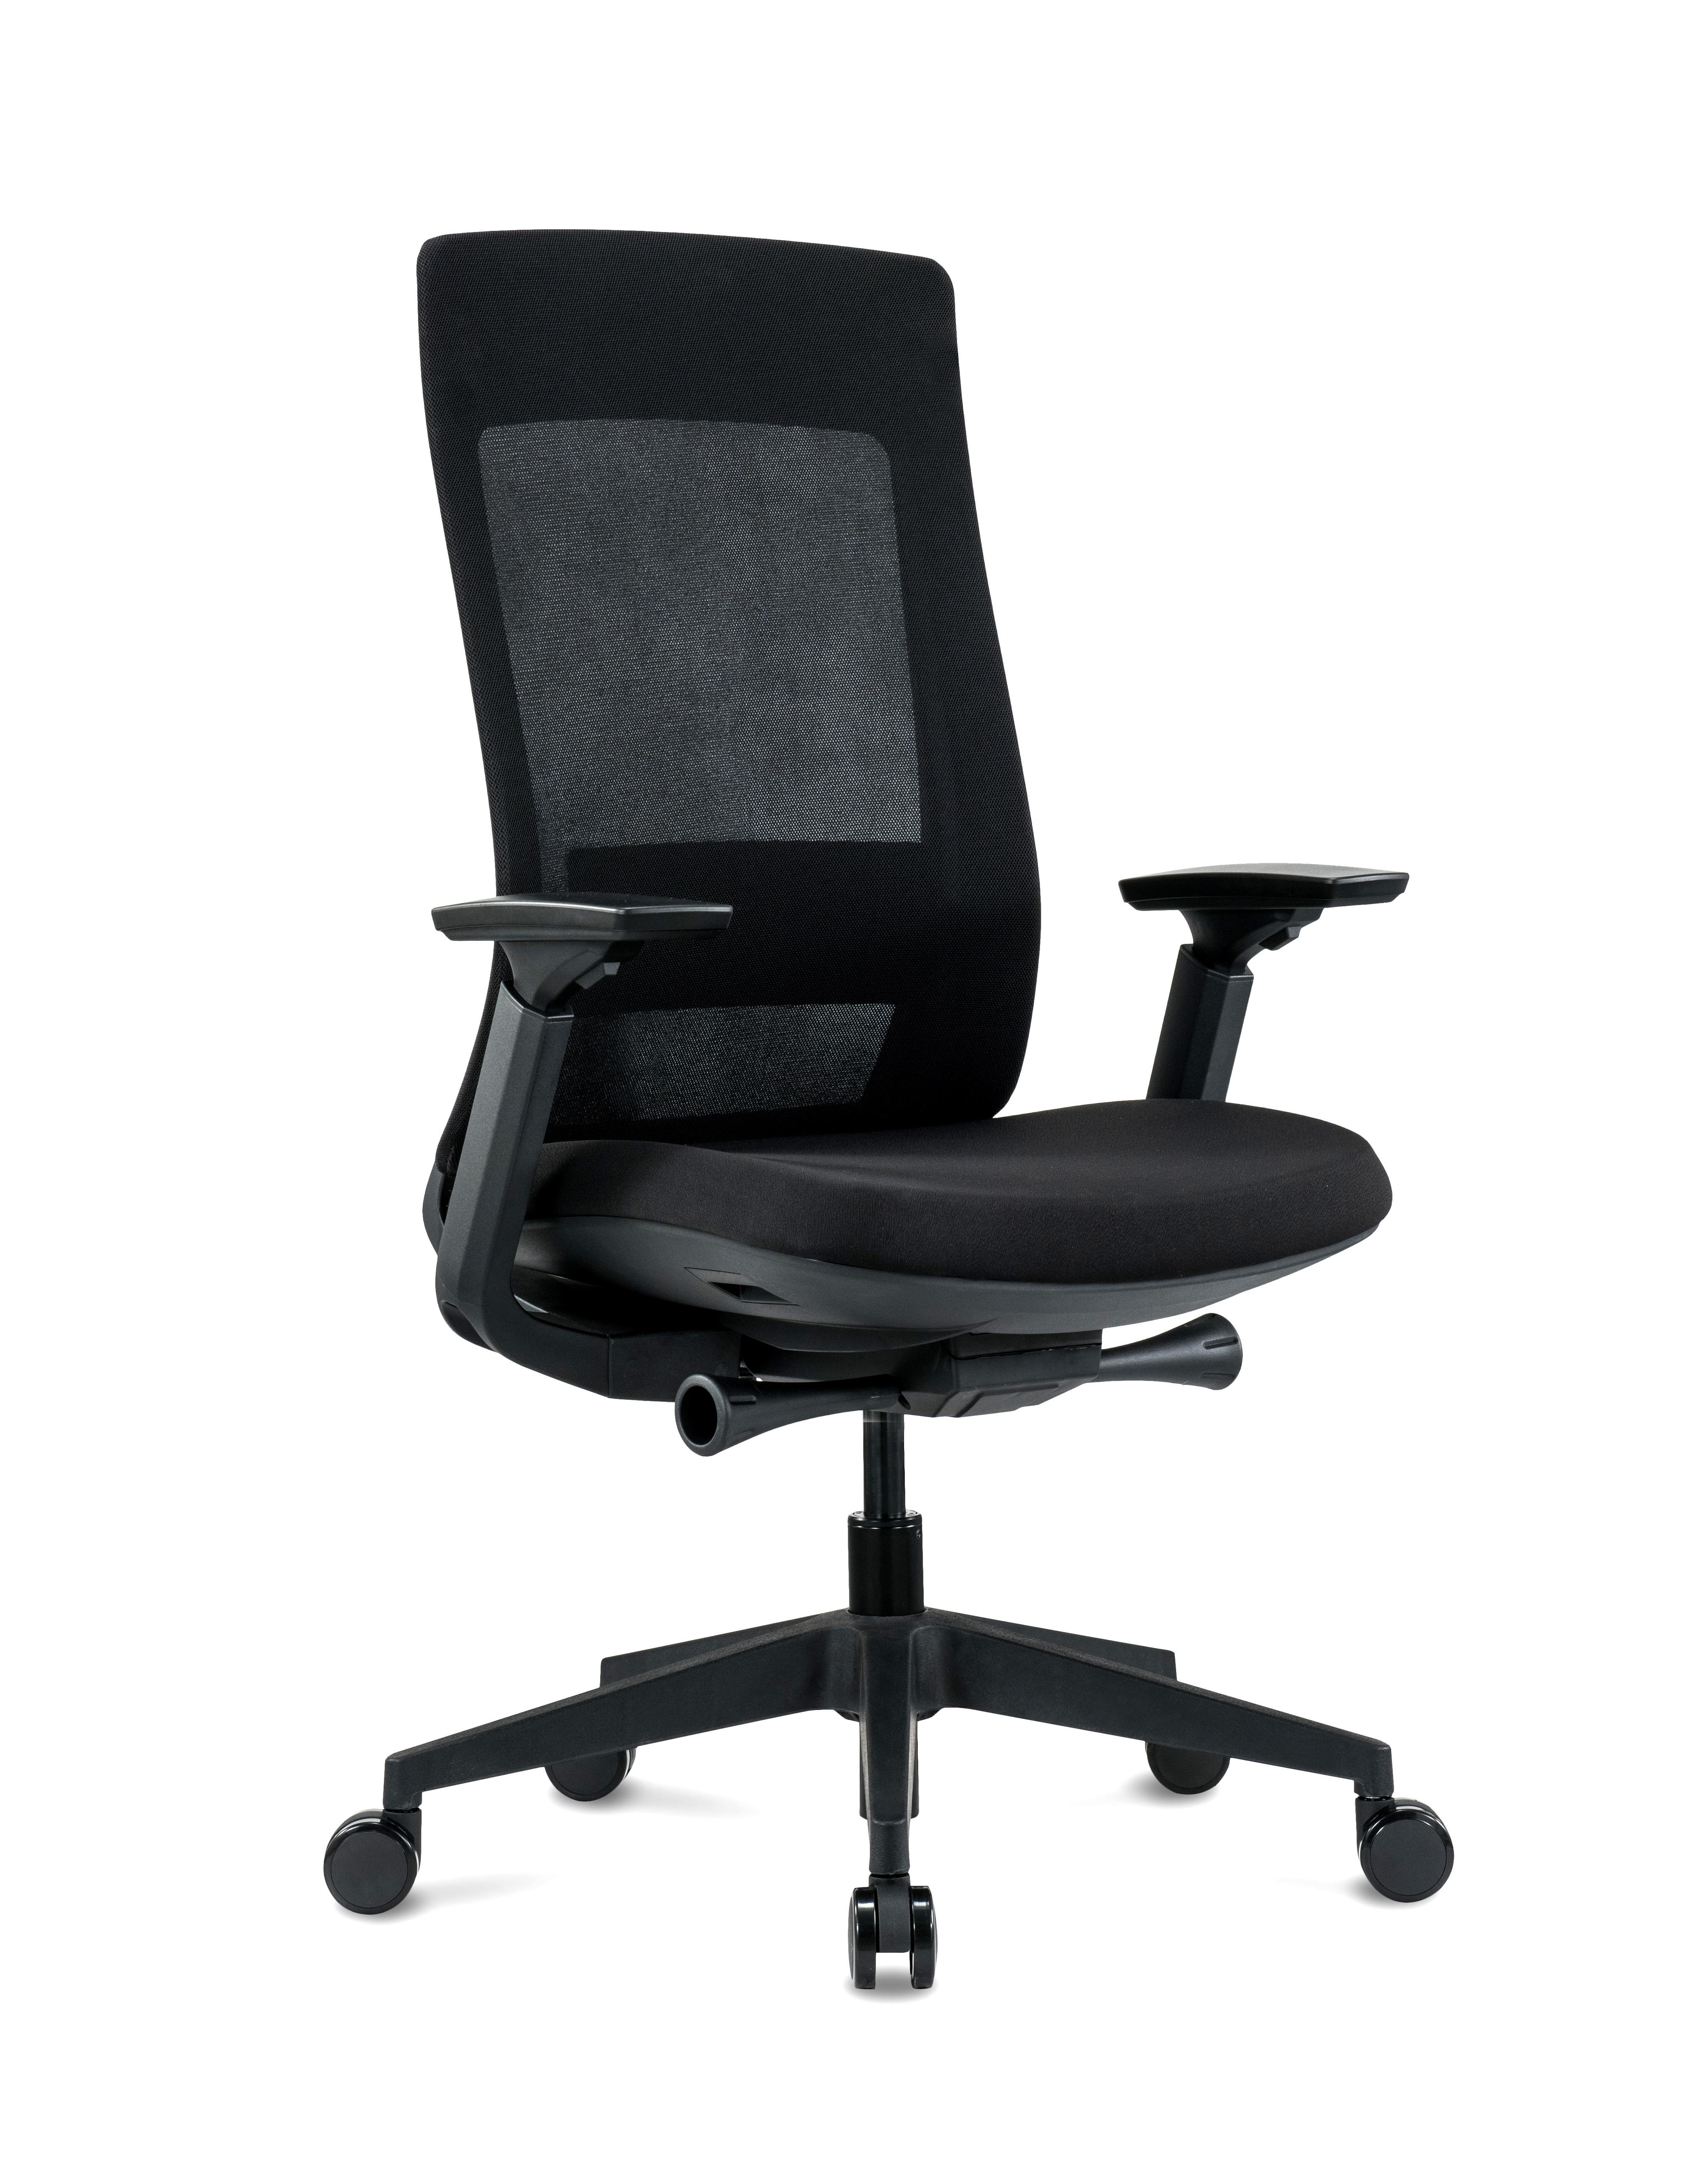 eurotech elevate chair